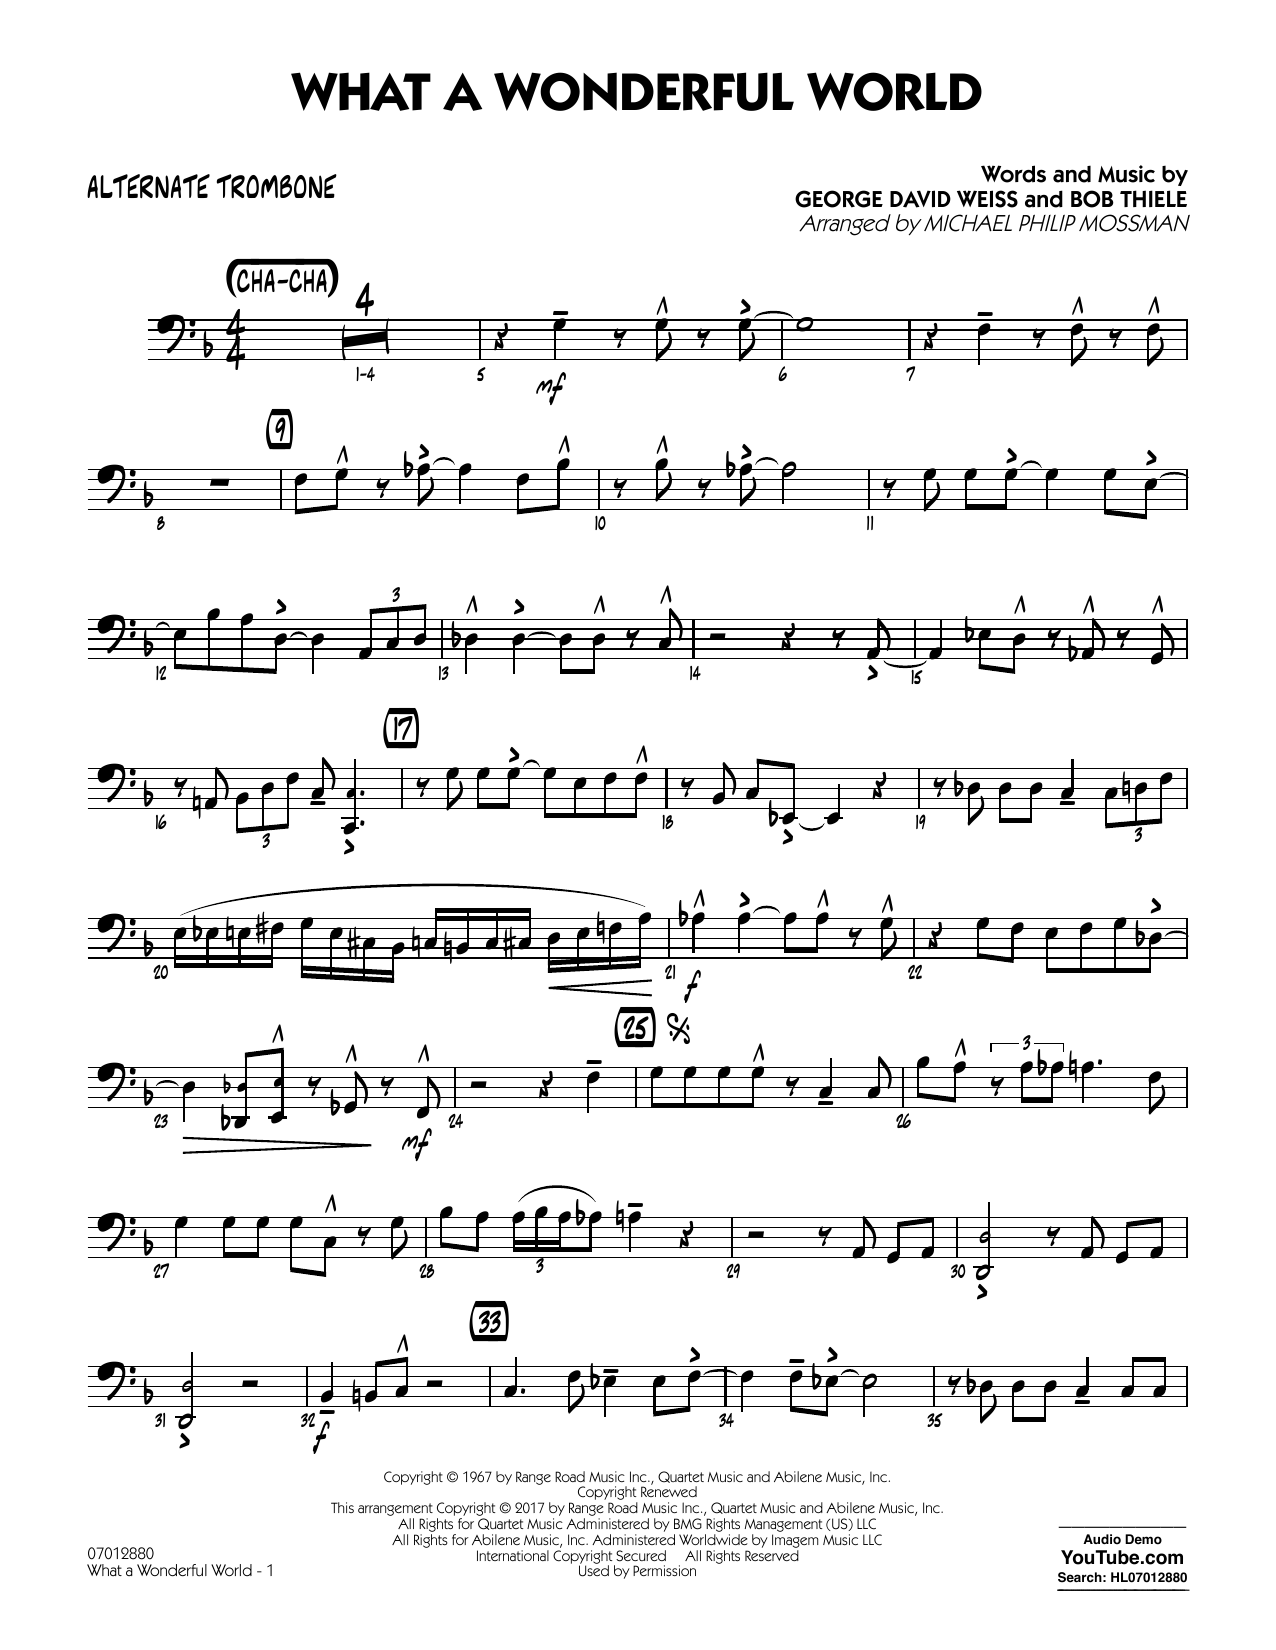 What A Wonderful World Dl - Alternate Trombone Sheet Music